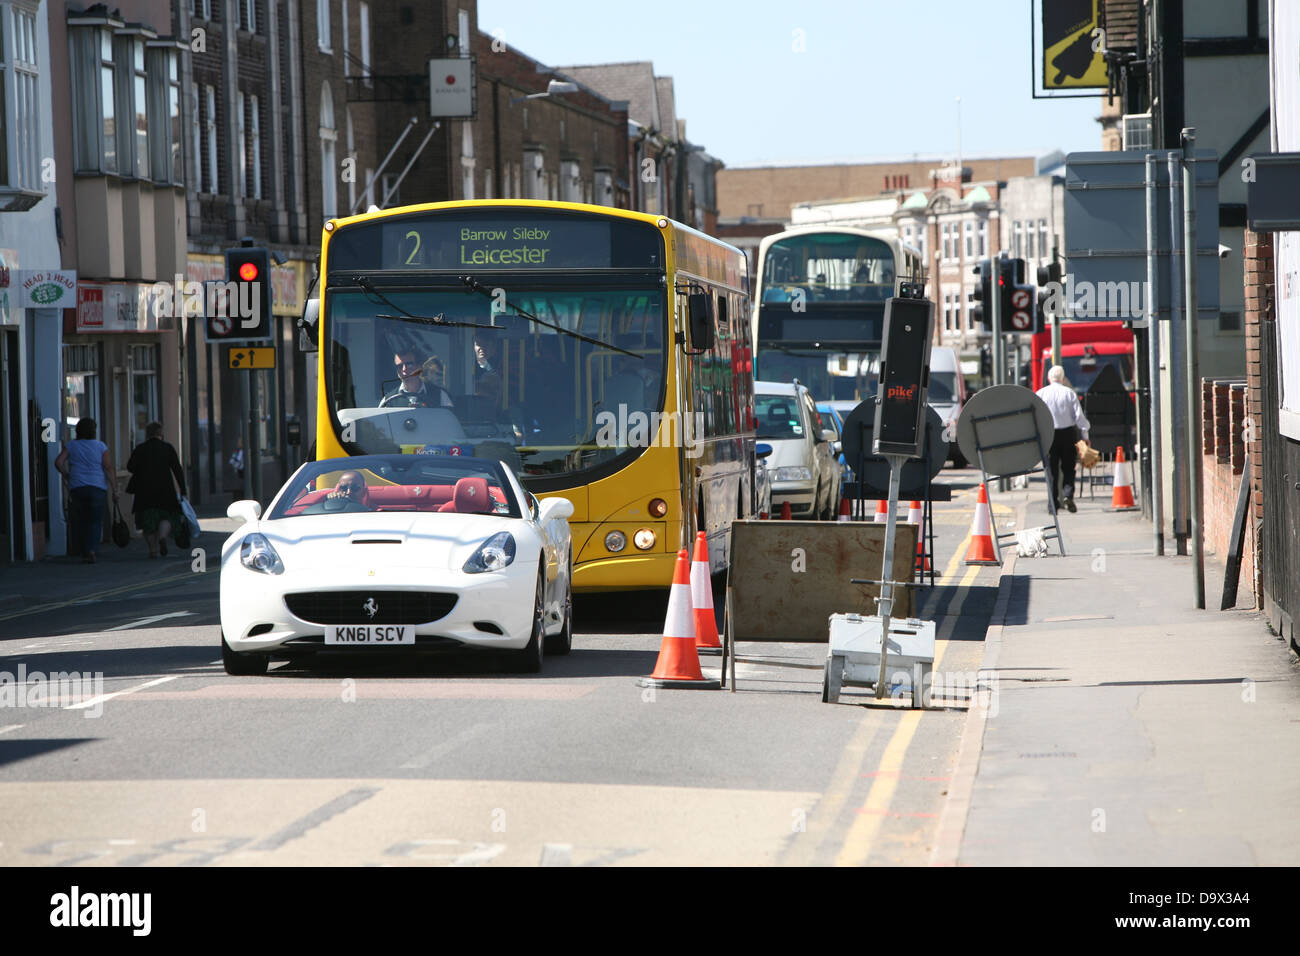 temporary traffic lights causing congestion in loughborough - Stock Image